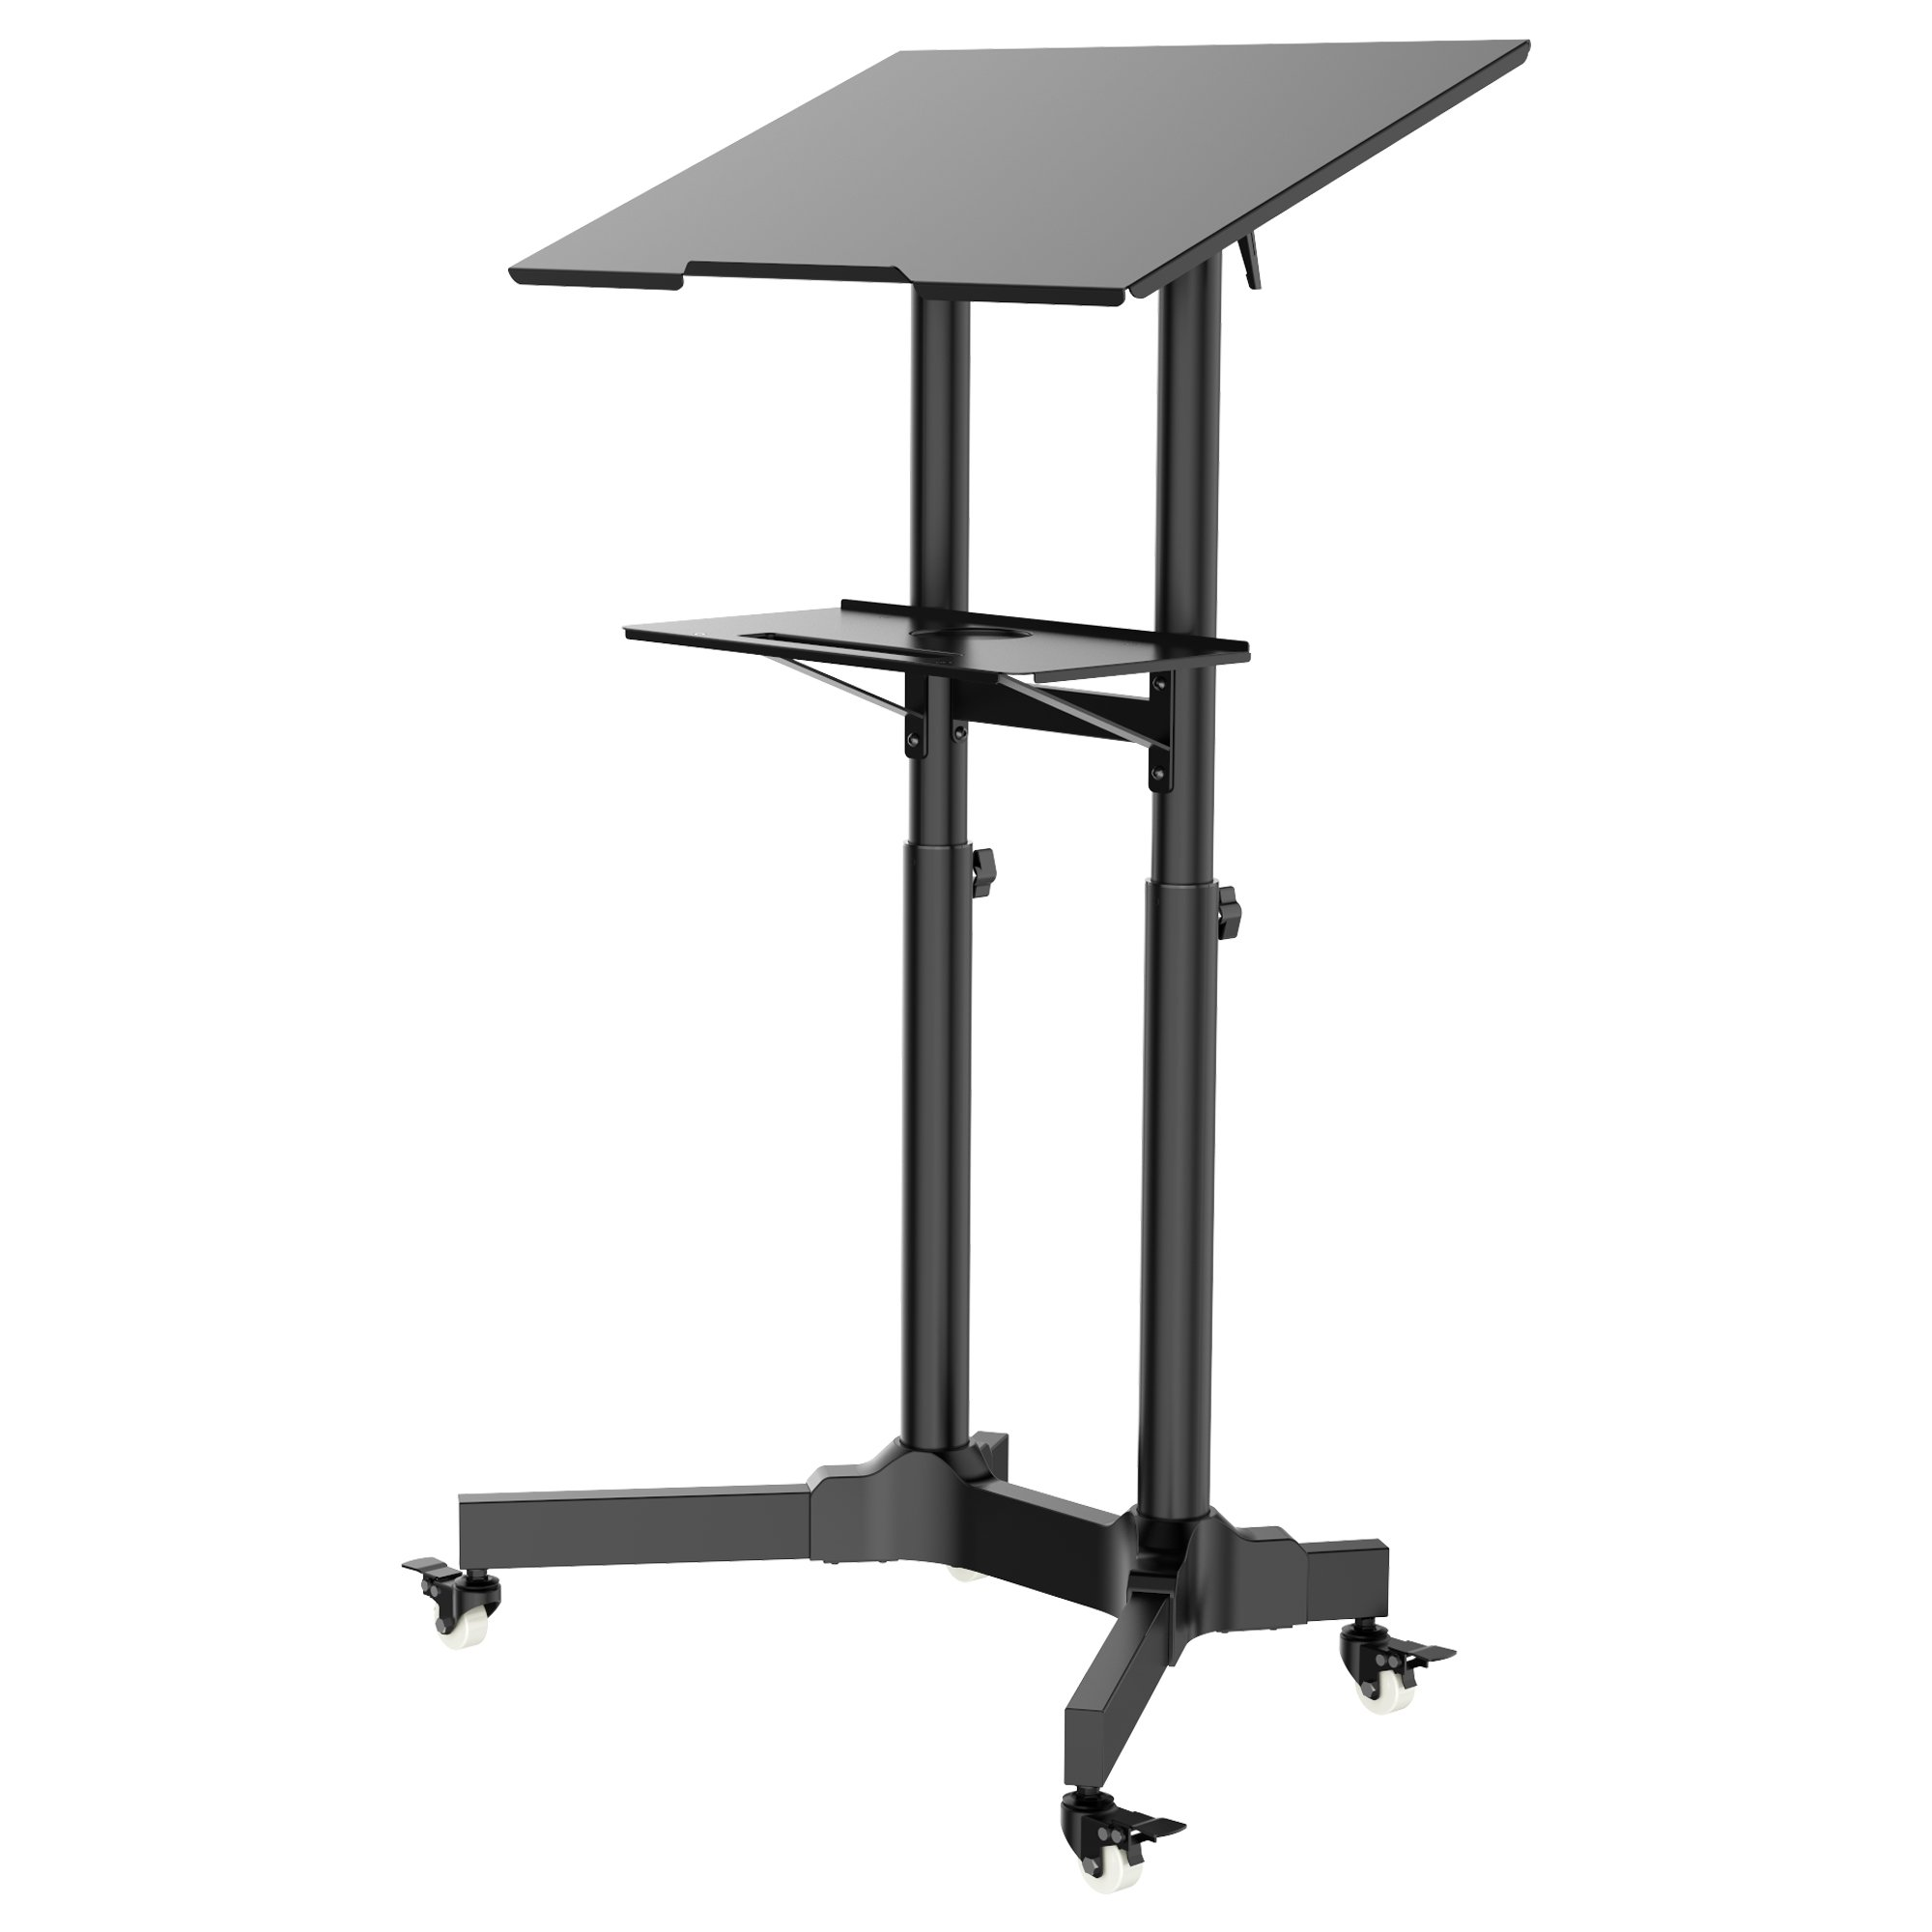 1homefurnit Mobile Table Laptop Desk Stand Notebook Cart Tray Compact Adjustable Workstation